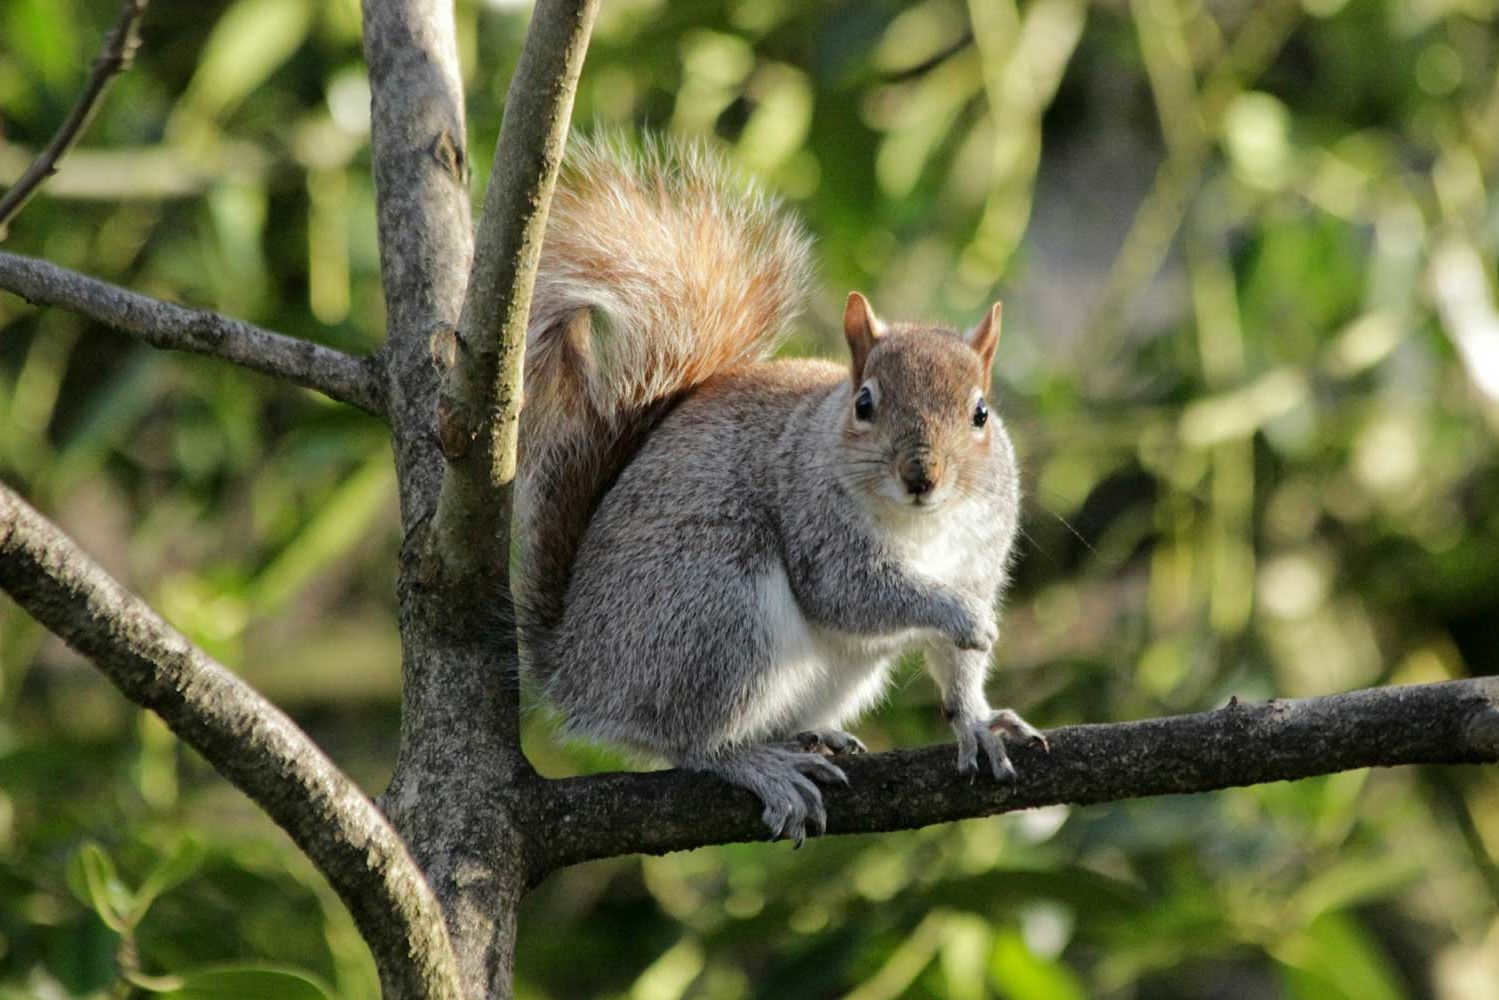 A Mischievous Squirrel Caused a Huge Power Outage at a Florida Theme Park